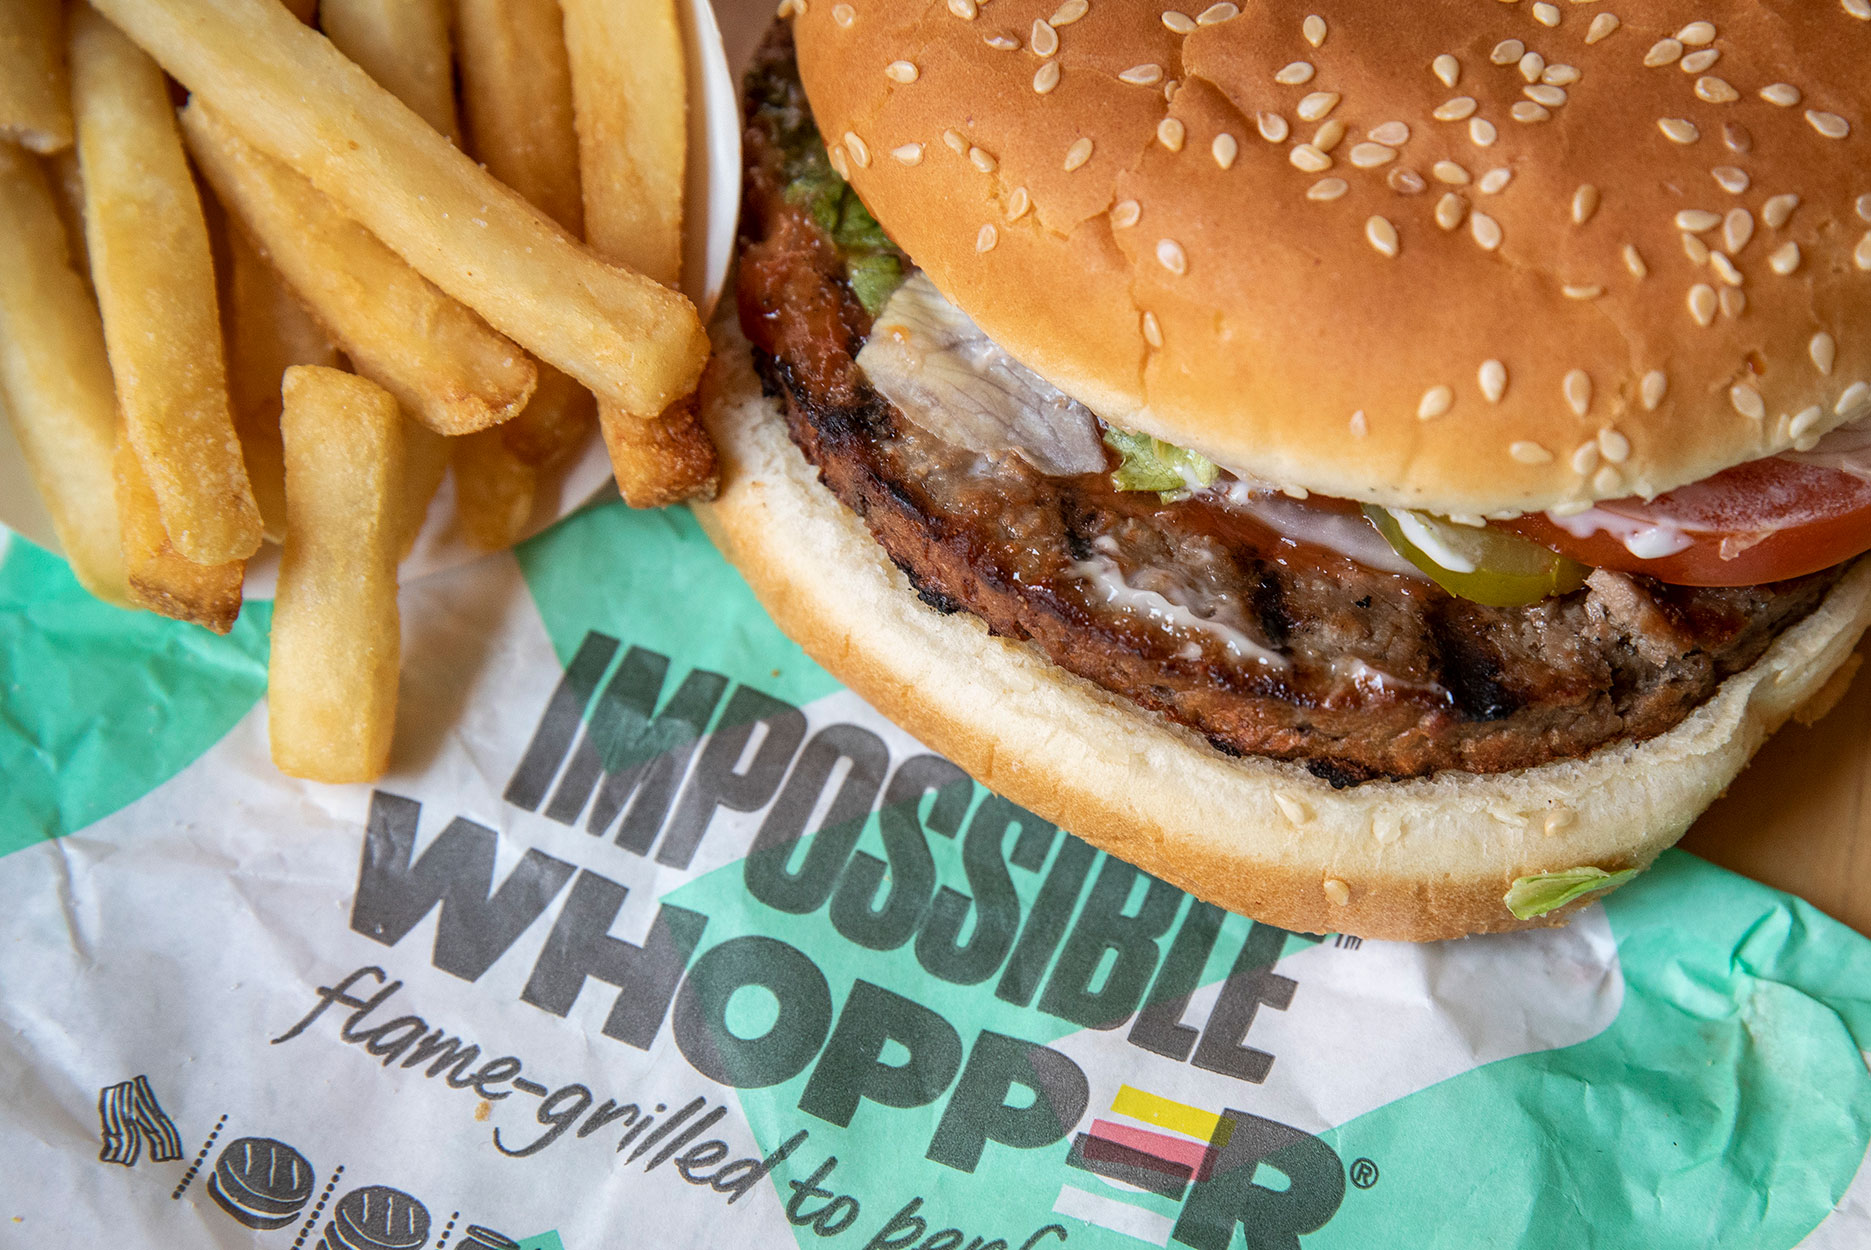 An Impossible Whopper meal